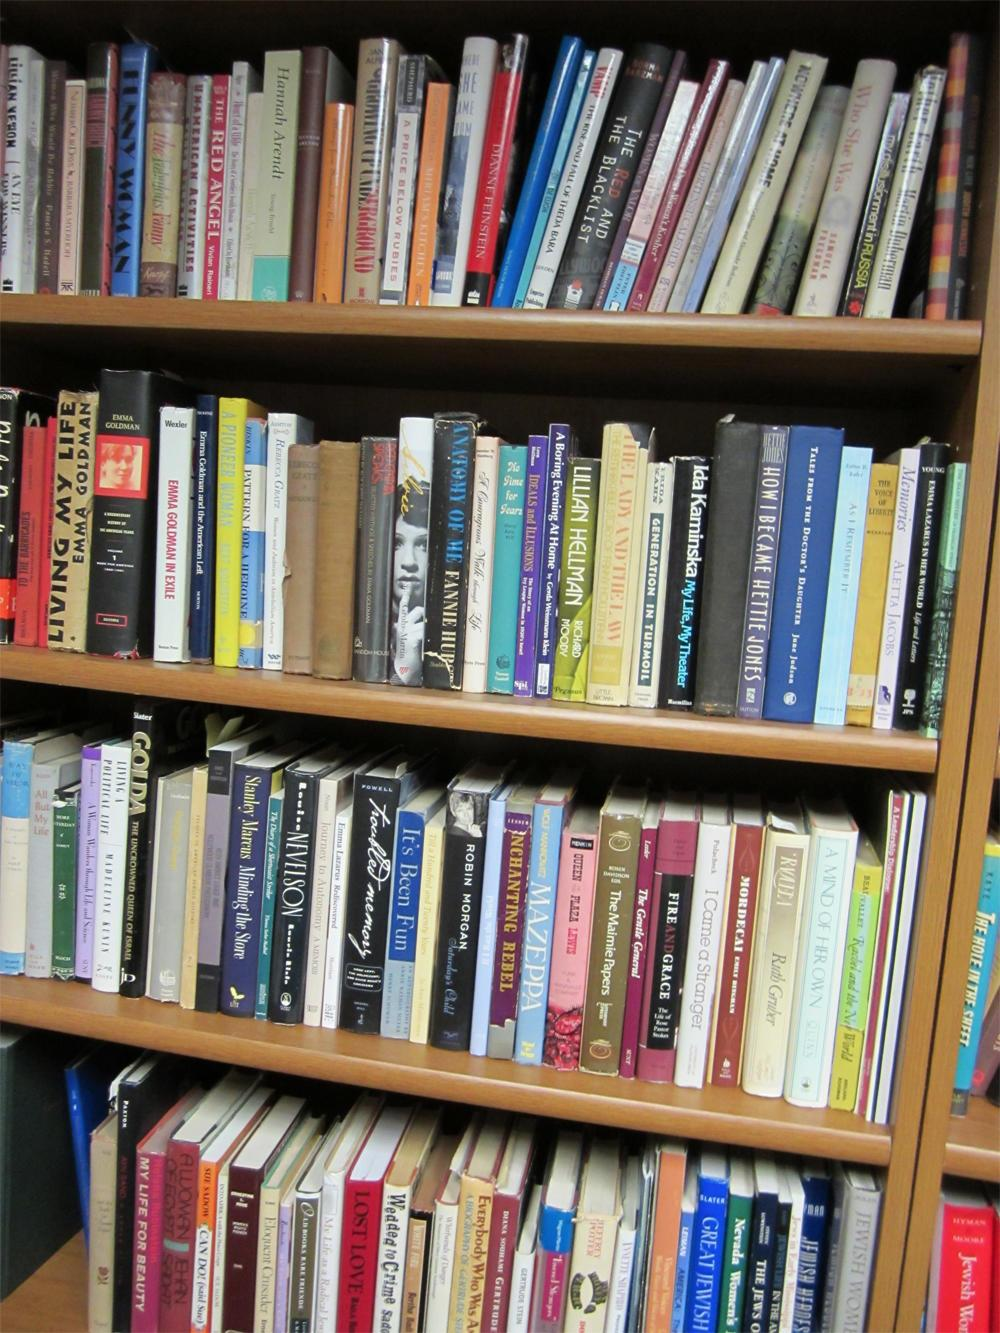 Bookshelf and books